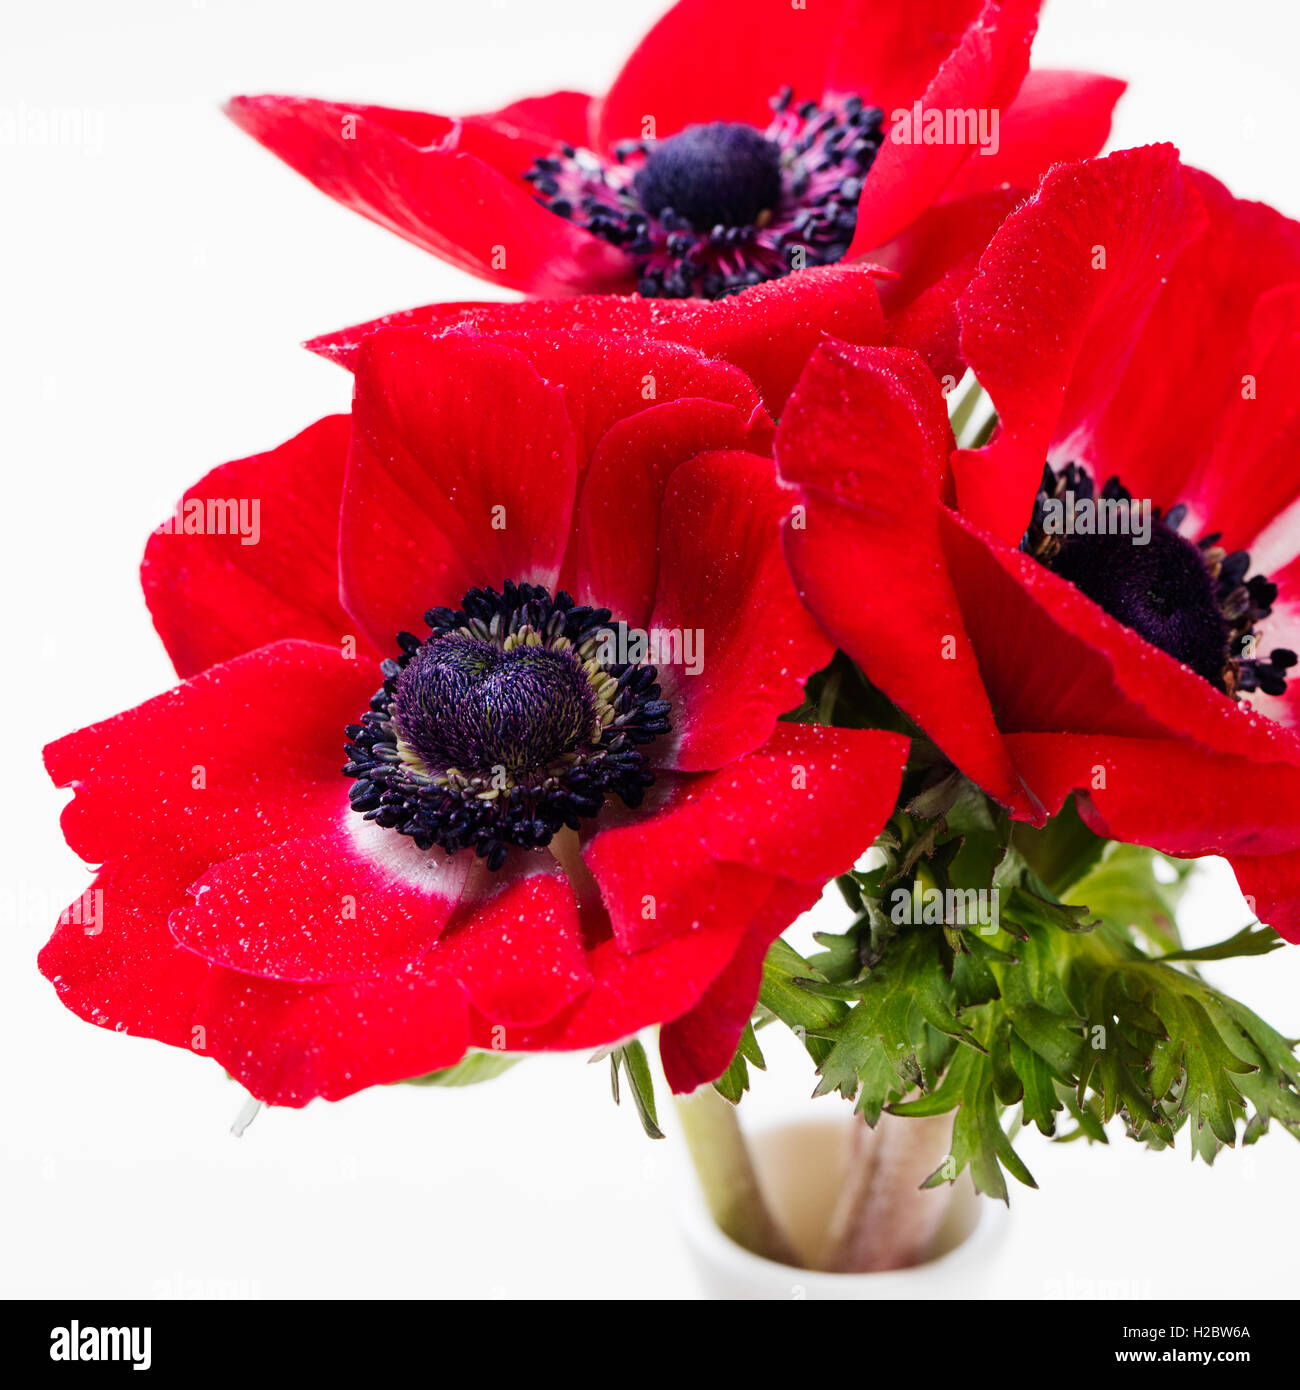 Red anemone flowers bouquet in a glass vase white background stock red anemone flowers bouquet in a glass vase white background izmirmasajfo